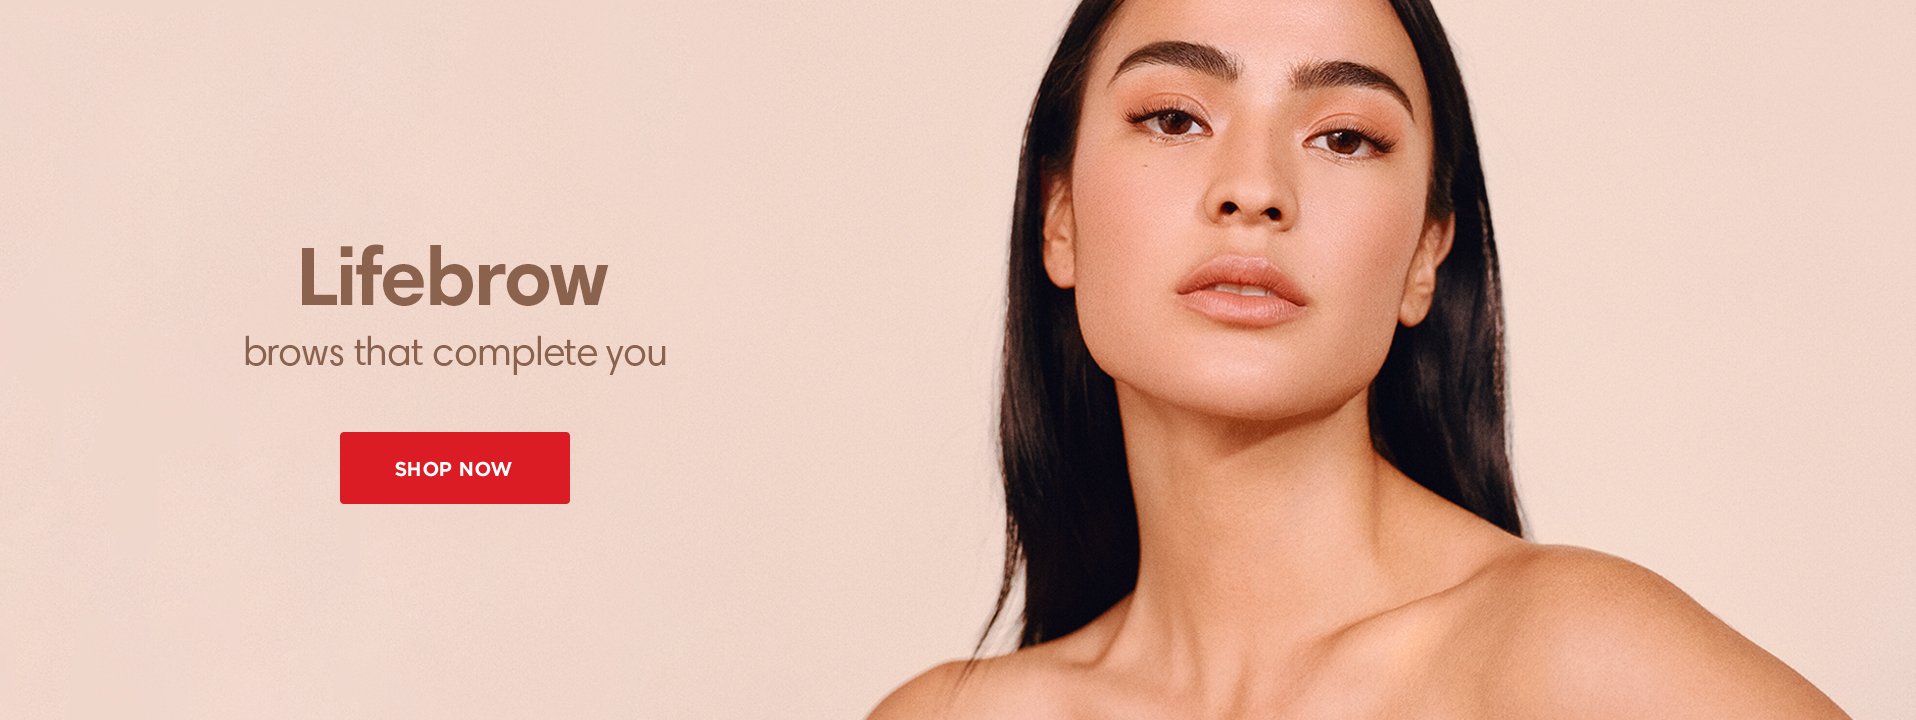 Introducing Lifebrow KV